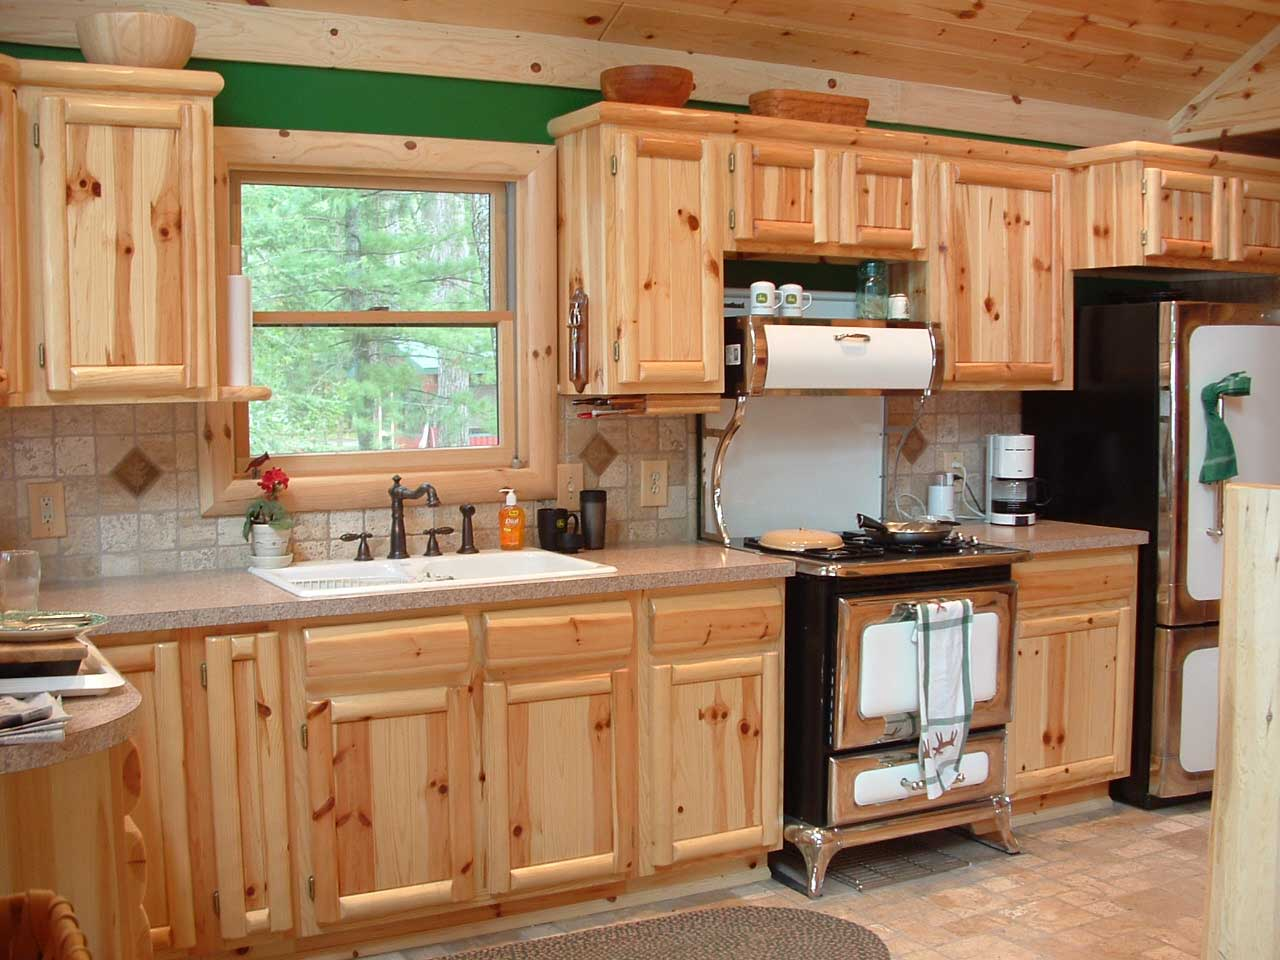 cabinetry pine cabinets kitchen 03WebQuality